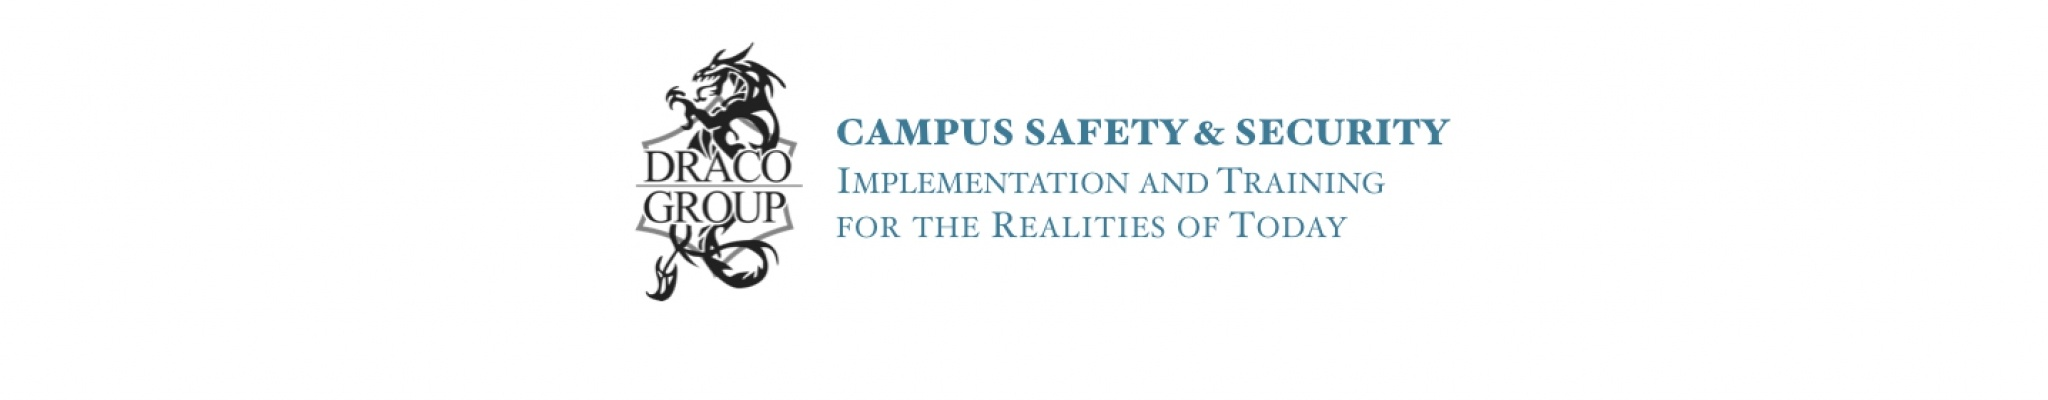 The DRACO GROUP: Campus Safety & Security